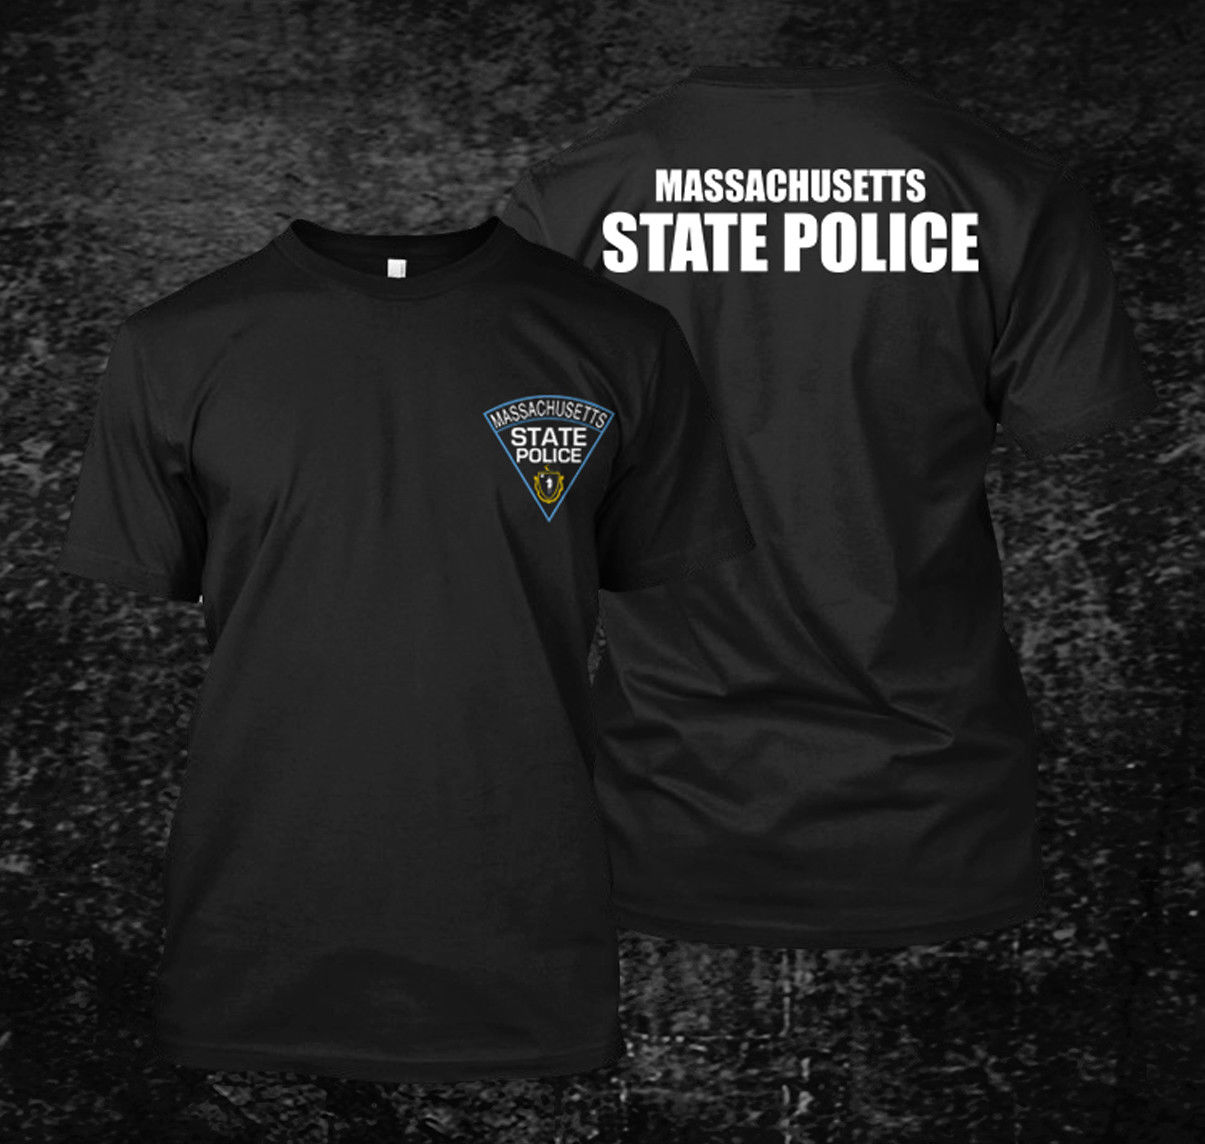 Loose Black Men Tshirts Homme Tees <font><b>Massachusetts</b></font> Police State Logo - Custom Men's T-Shirt Tee Print T-Shirt Mens image